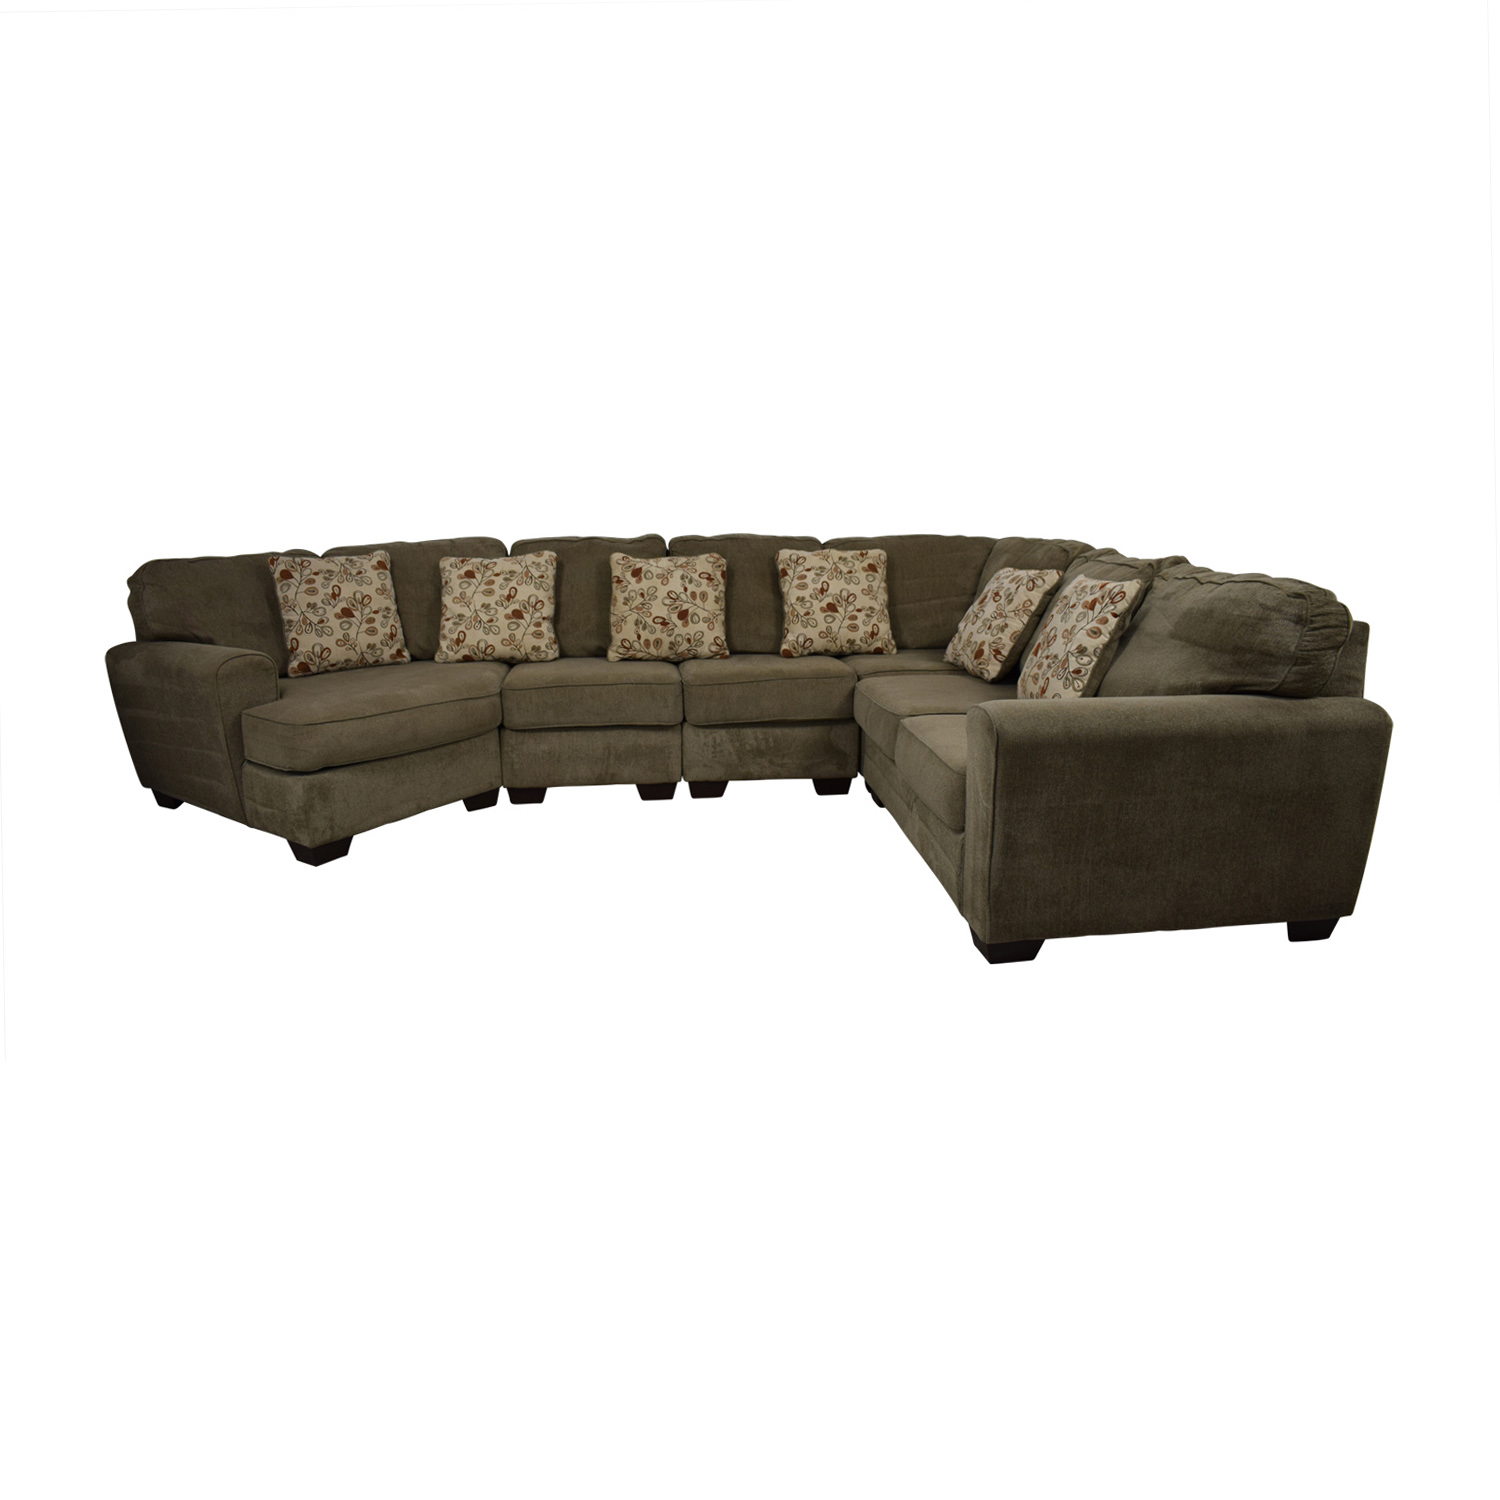 Ashley Furniture Ashley Furniture Tan L-Shaped Curved Sectional with Angled Seat discount